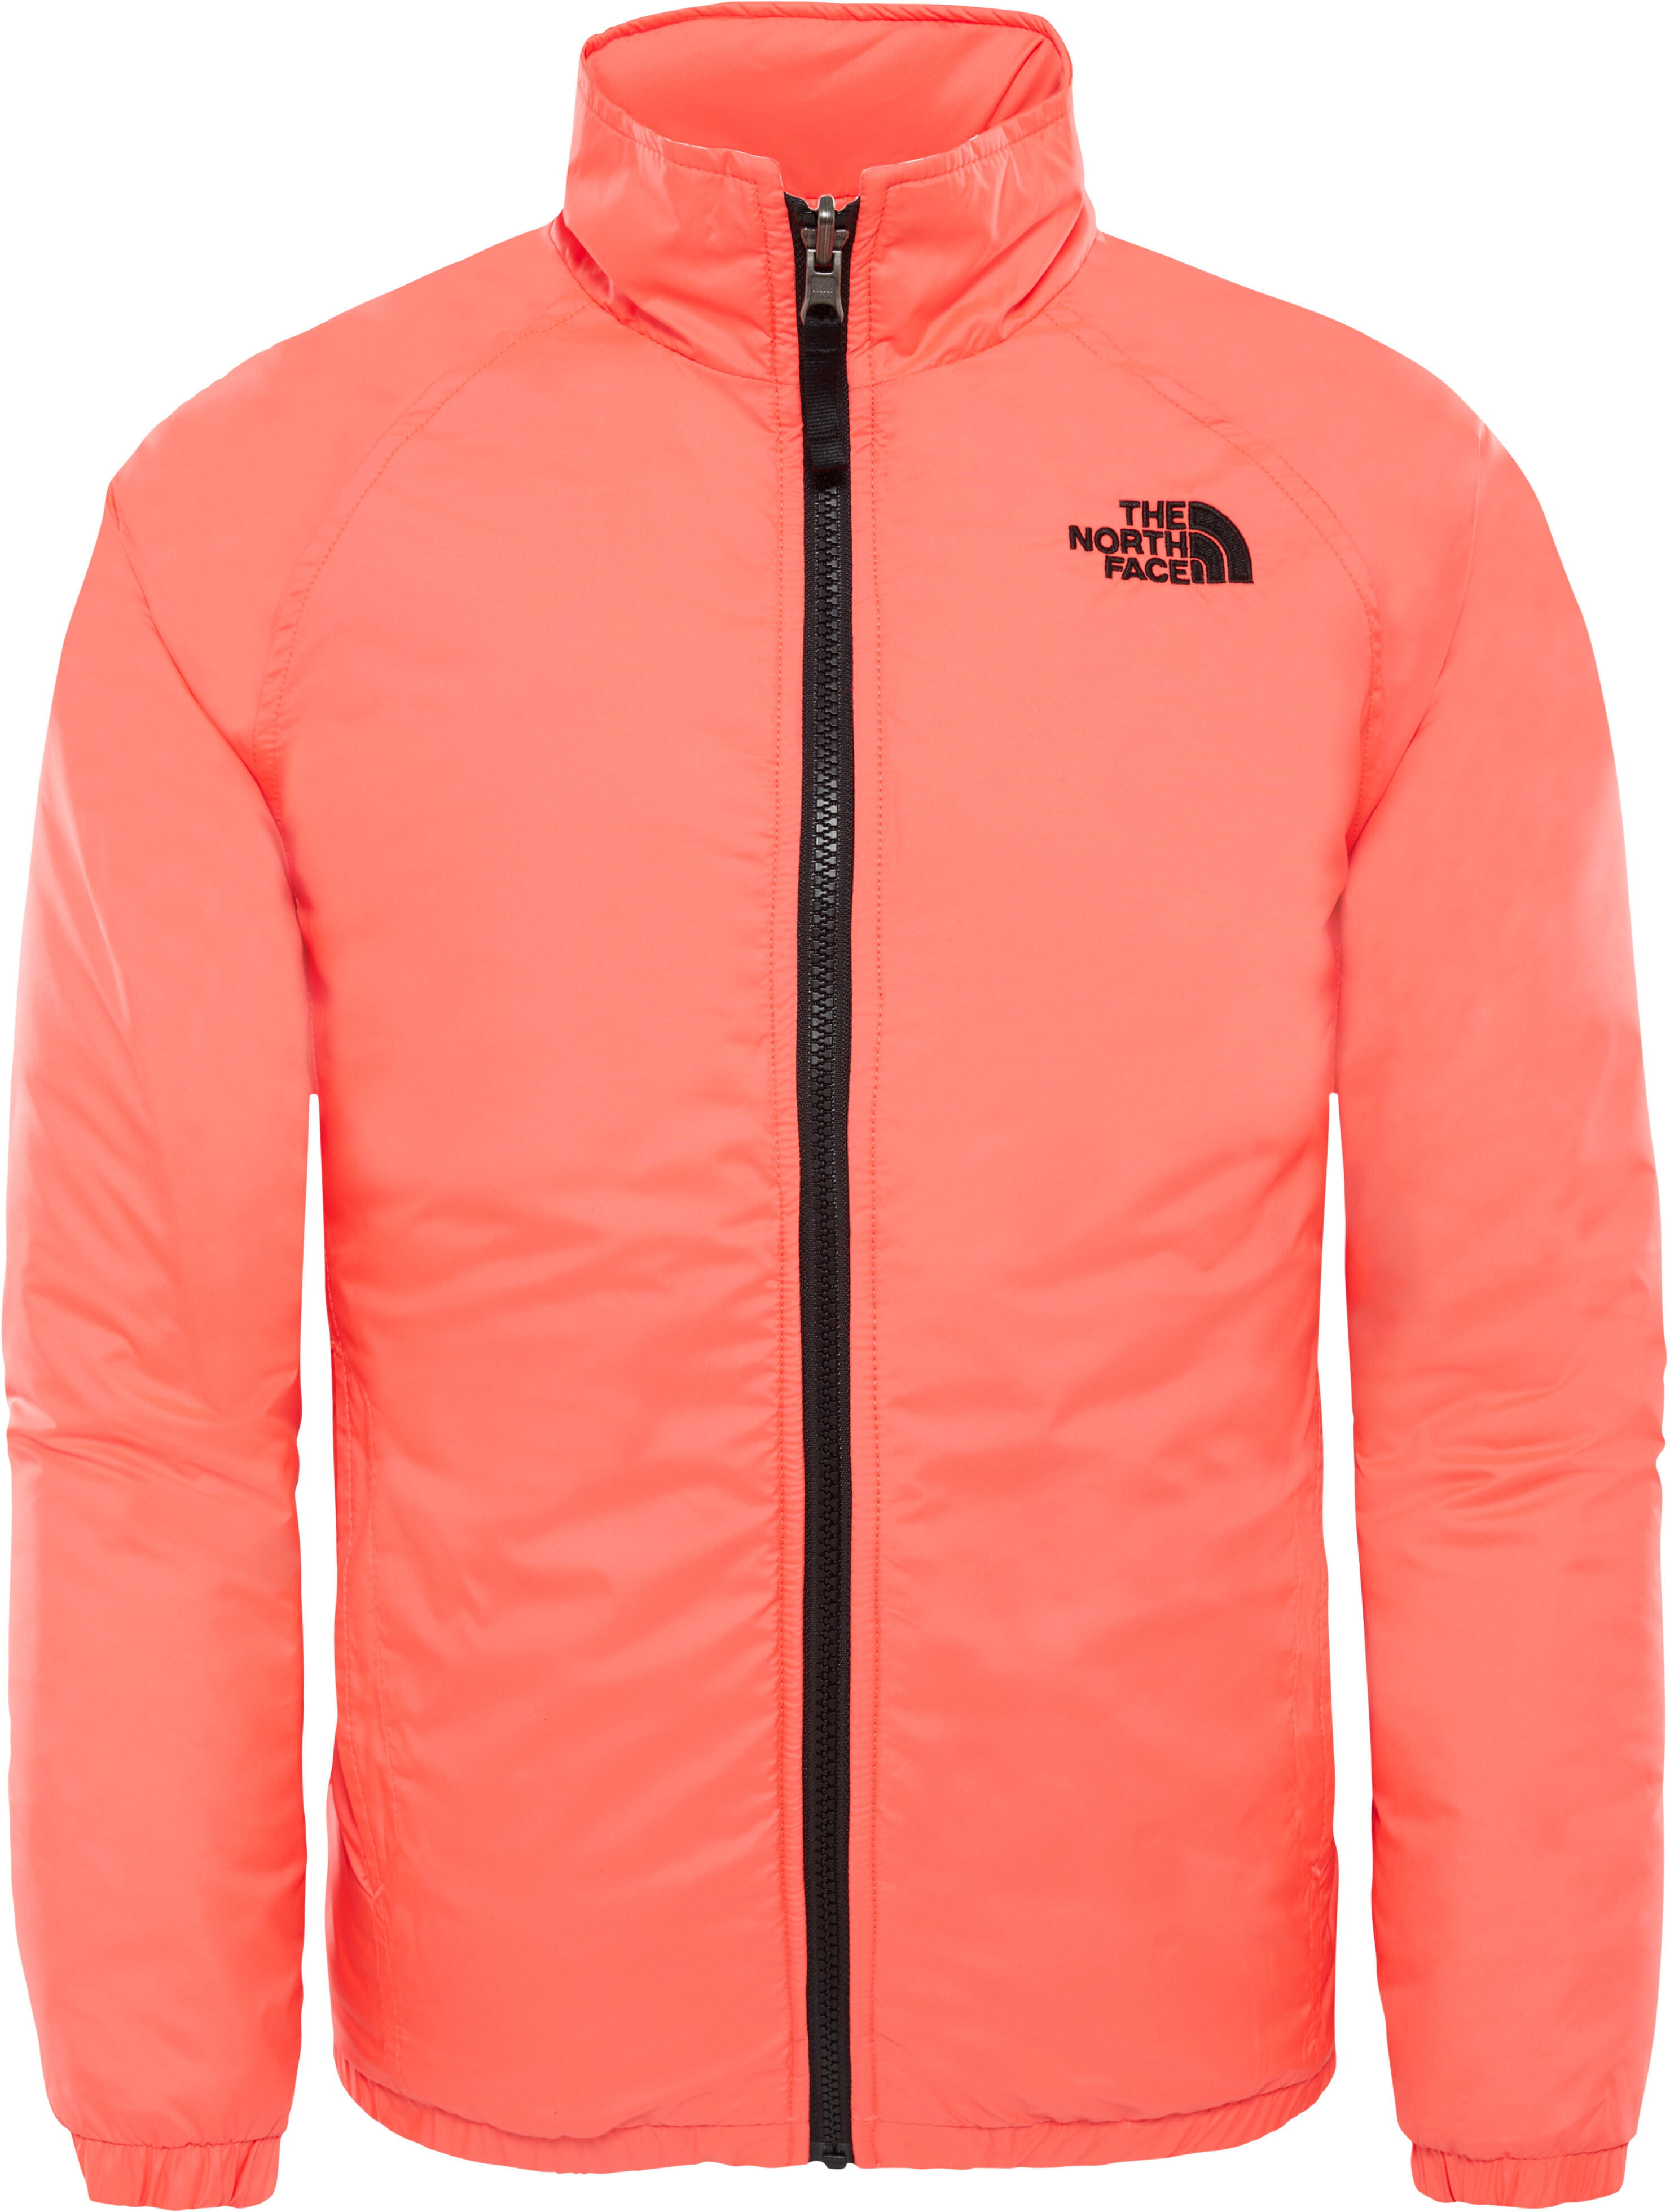 0492b5df17 The North Face Kira - Veste Enfant - noir sur CAMPZ !